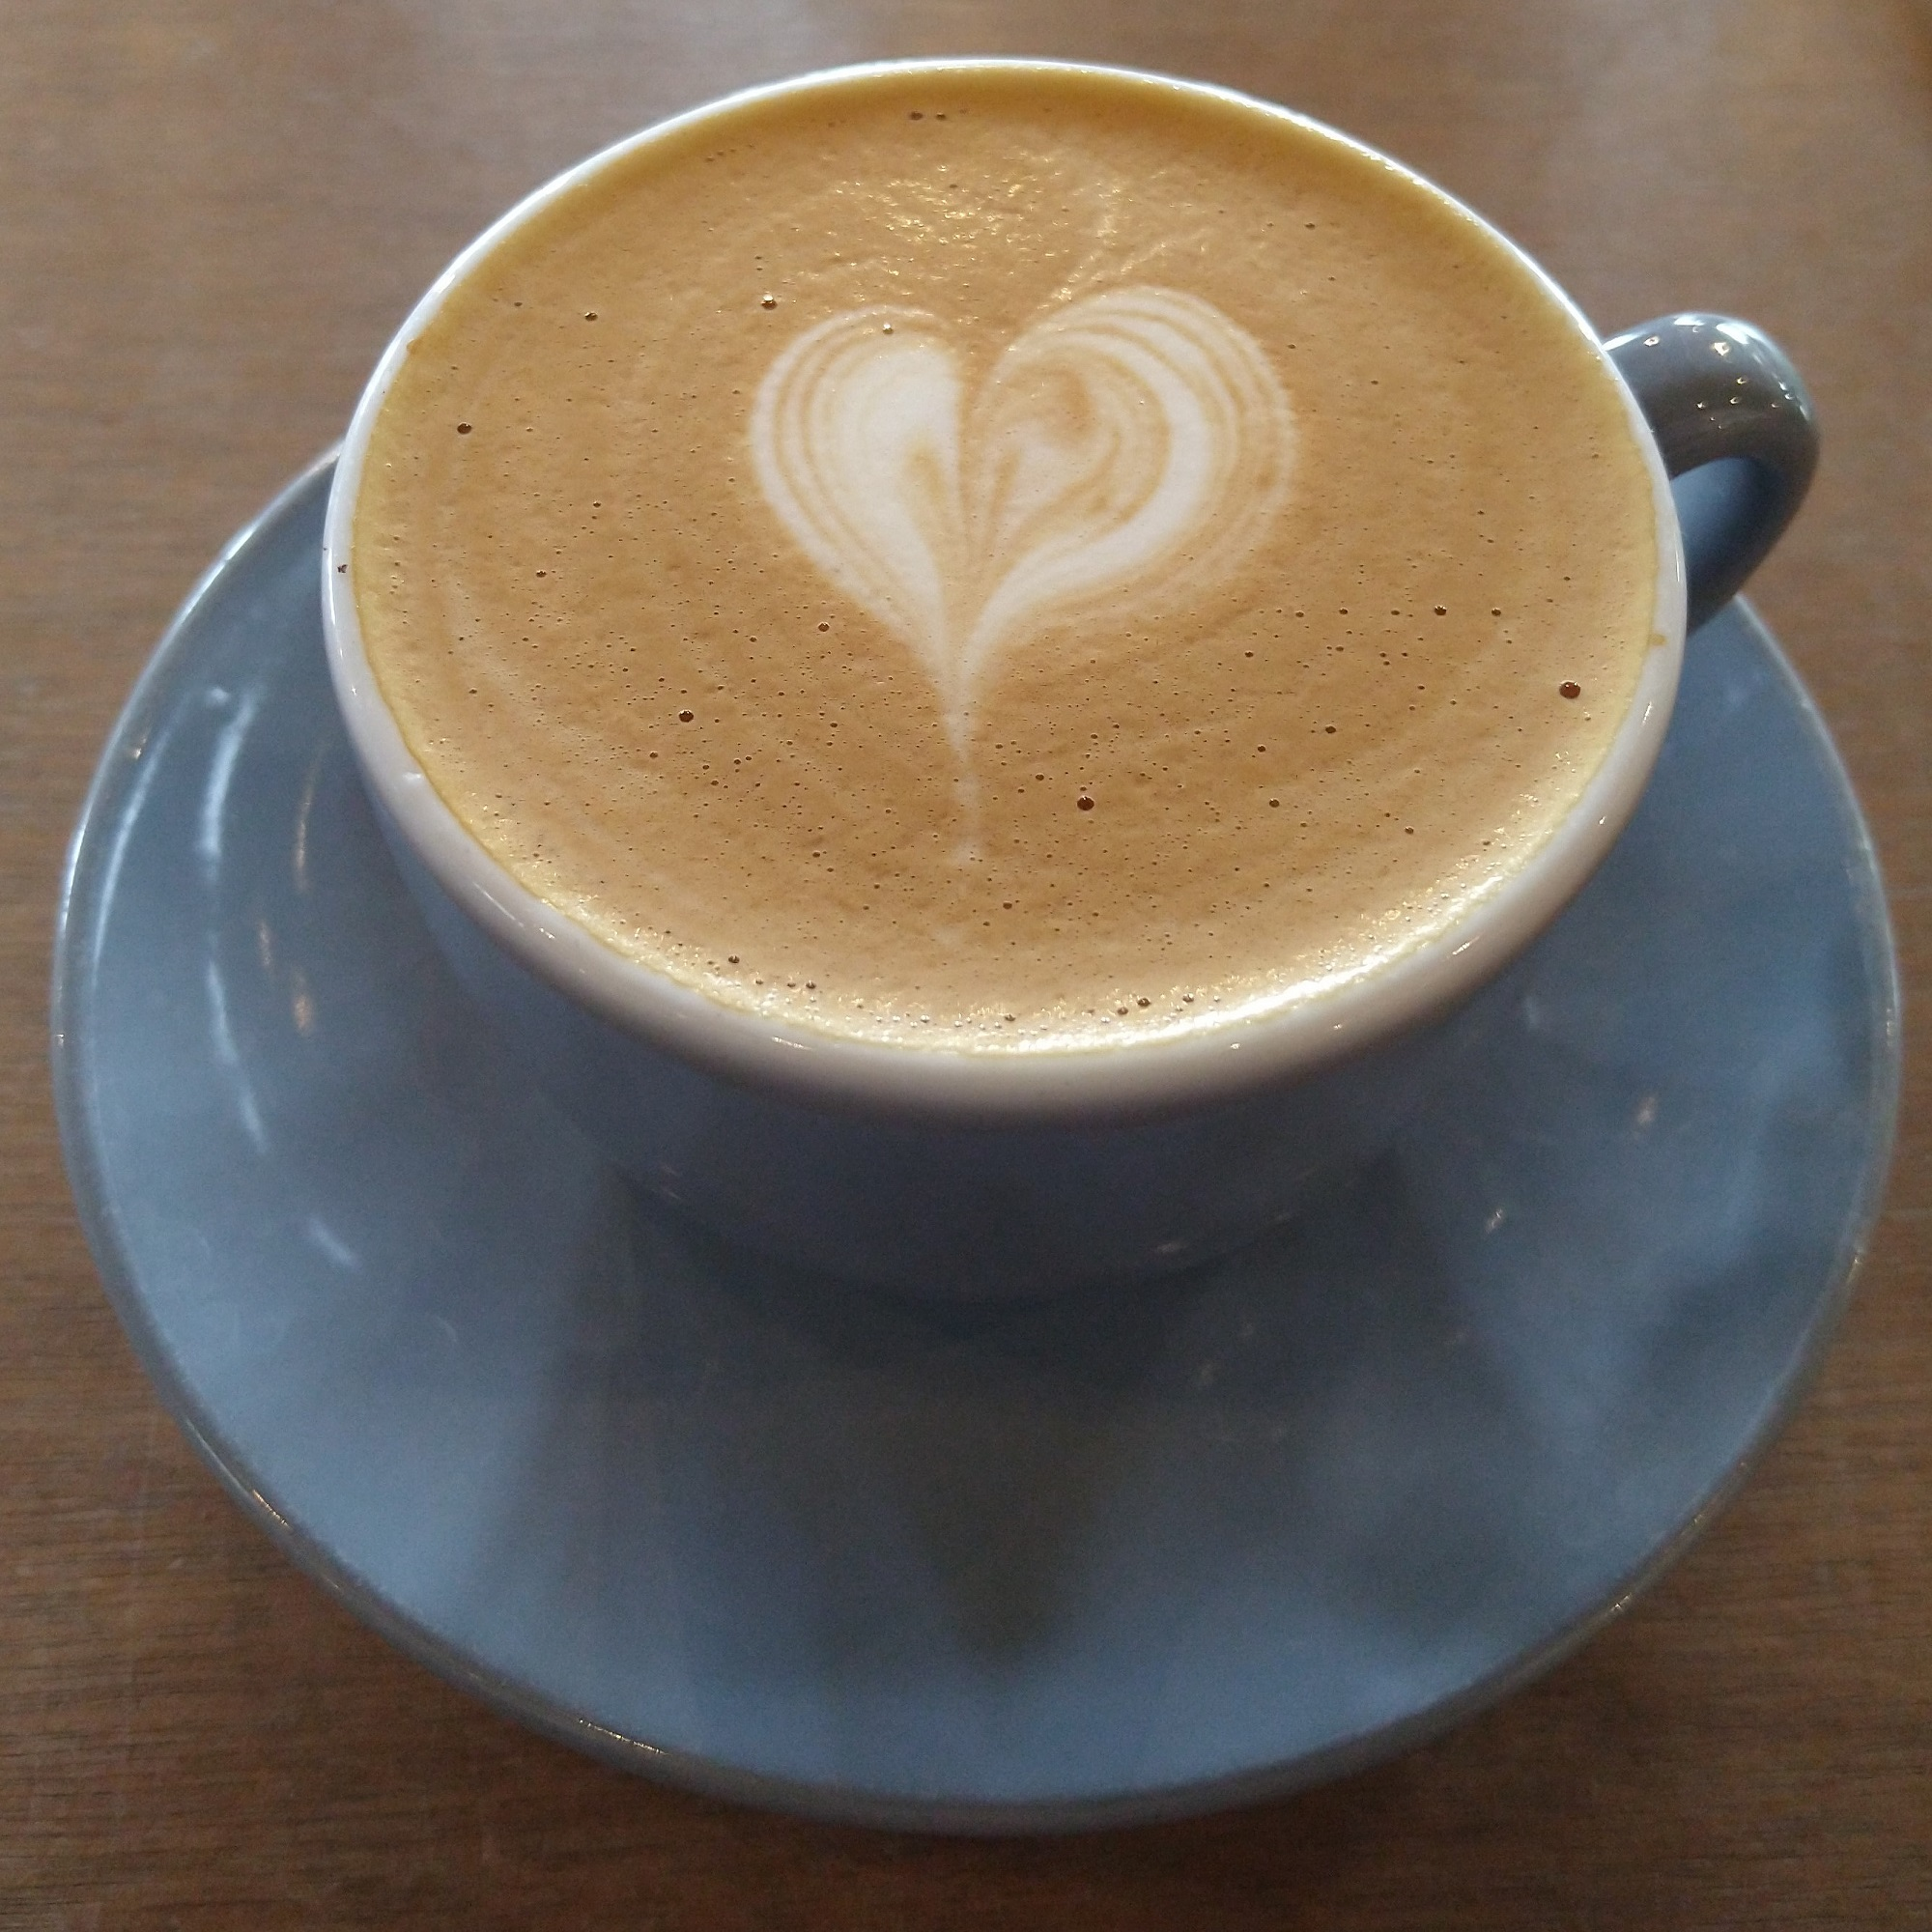 My flat white, made with the Jabbajaws blend at Coopers Roastery & Coffee Bar, served in a classic blue cup and enjoyed inside for the first time in 2021!